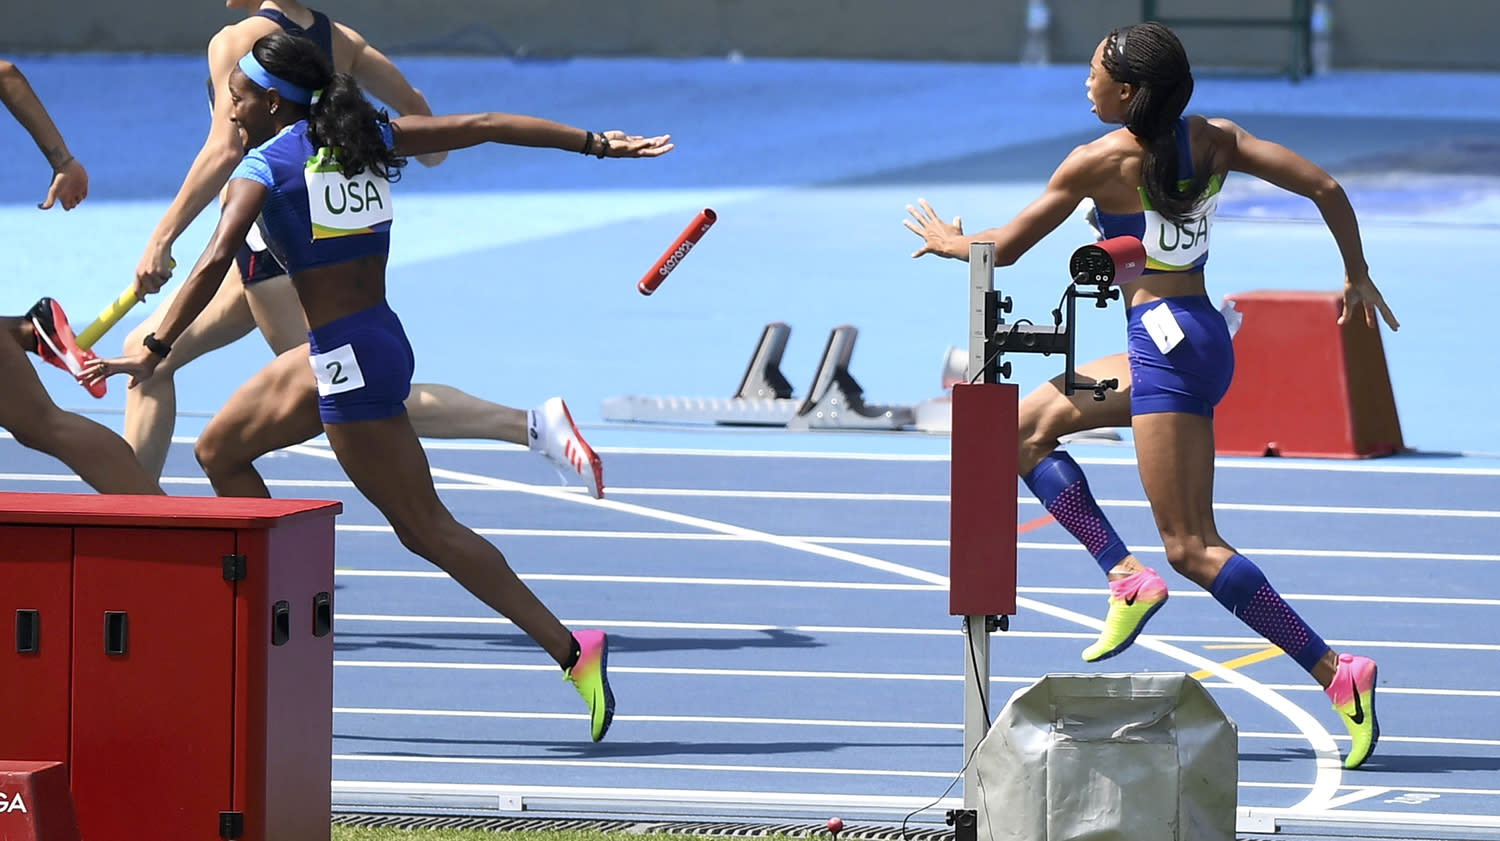 U.S. women's relay team drops baton